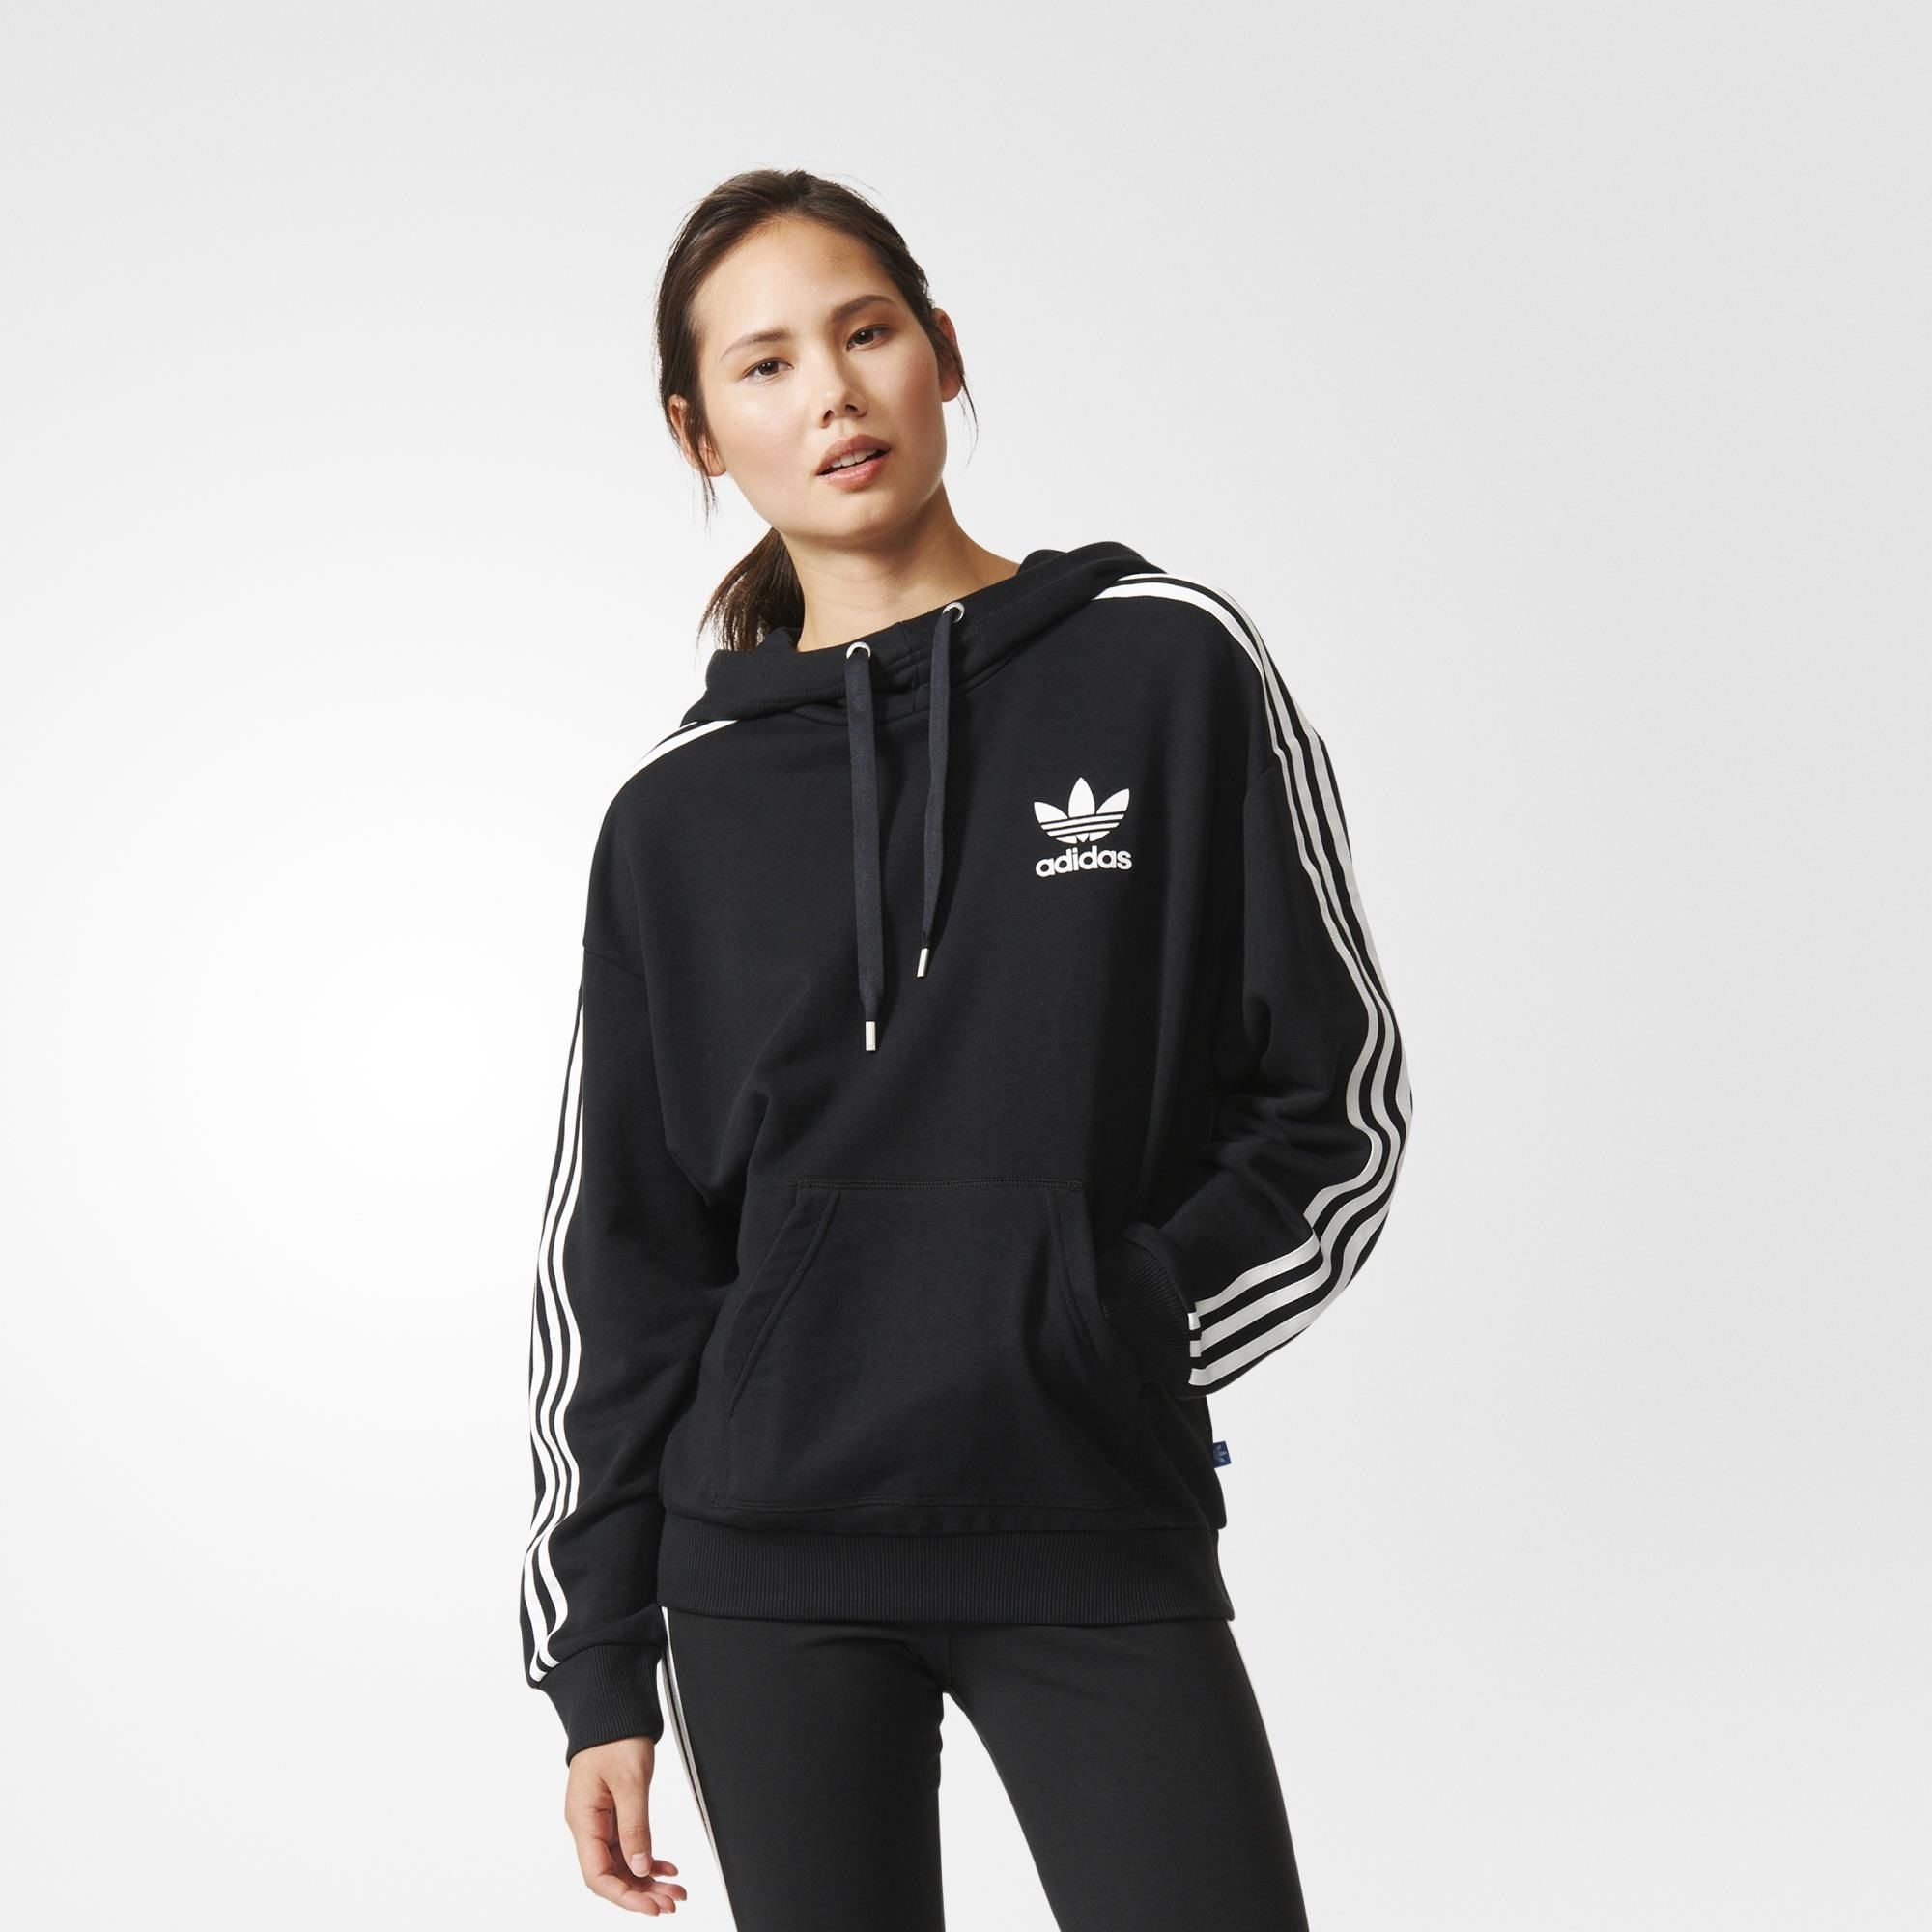 adidas originals sudadera 3-stripes